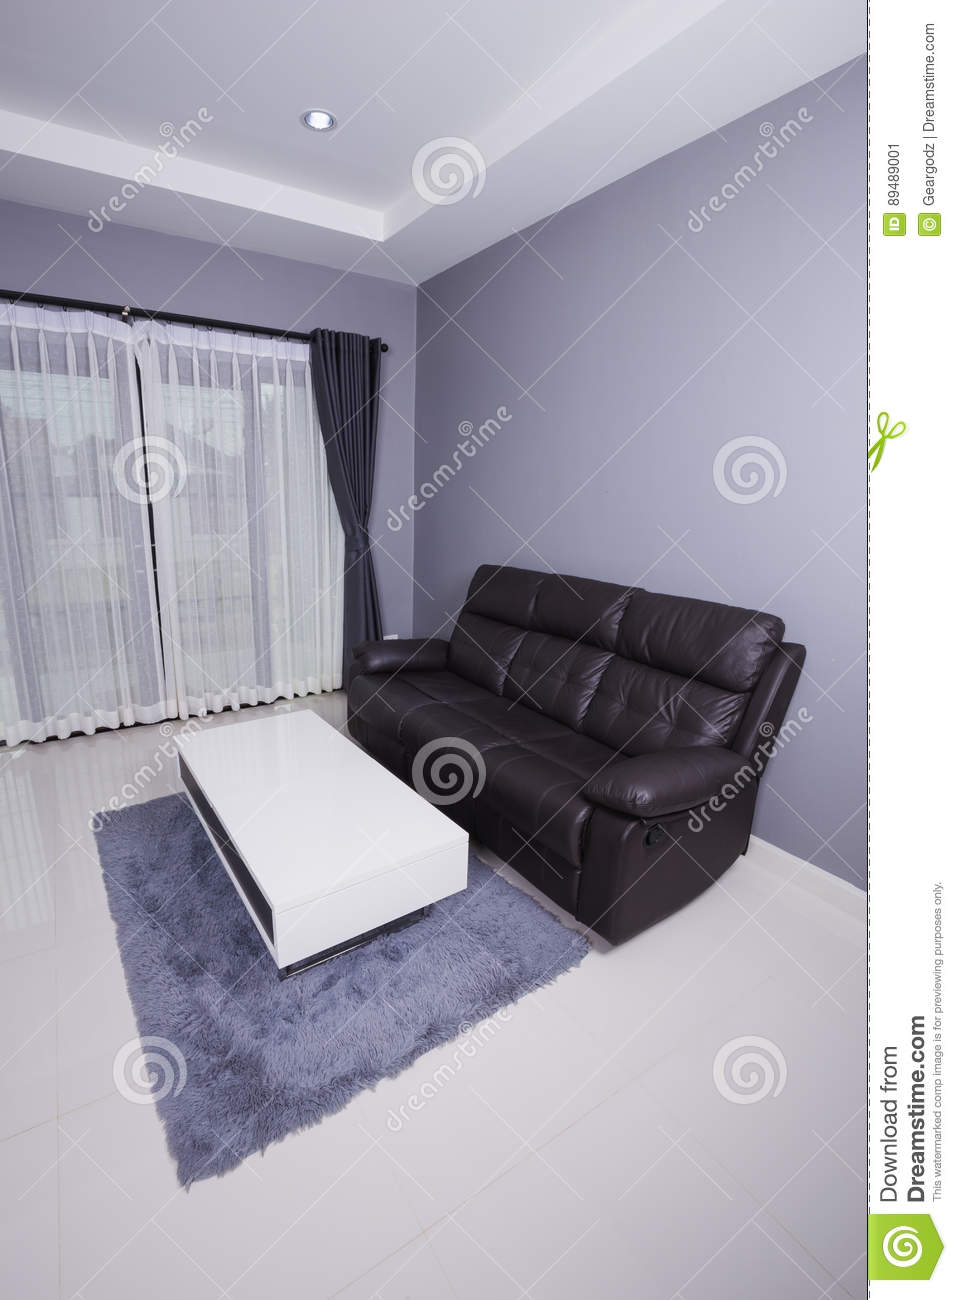 Residential interior of modern living room with sofa